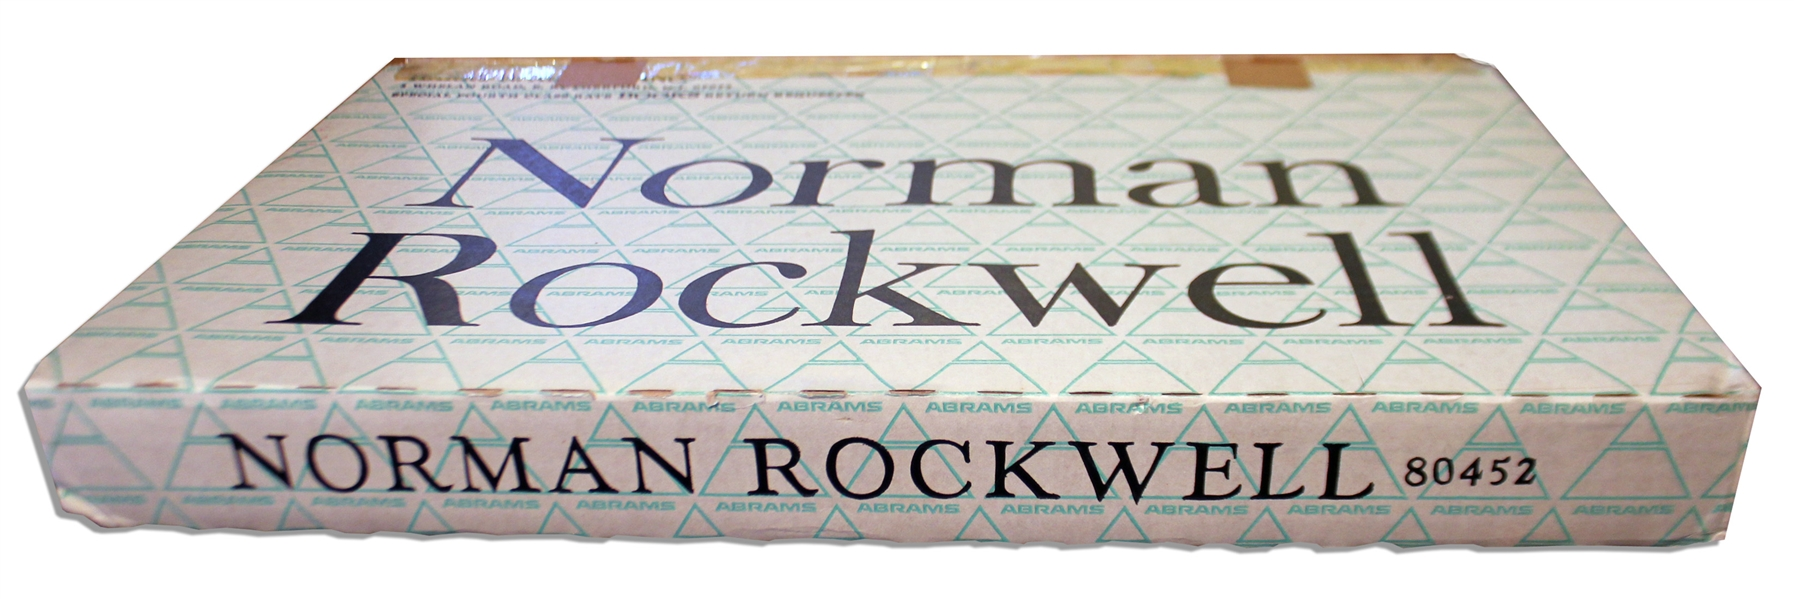 Norman Rockwell's Signature Affixed Within Coffee Table Book ''Norman Rockwell: Artist and Illustrator'' -- Nice Large Format Collection of Rockwell Illustrations